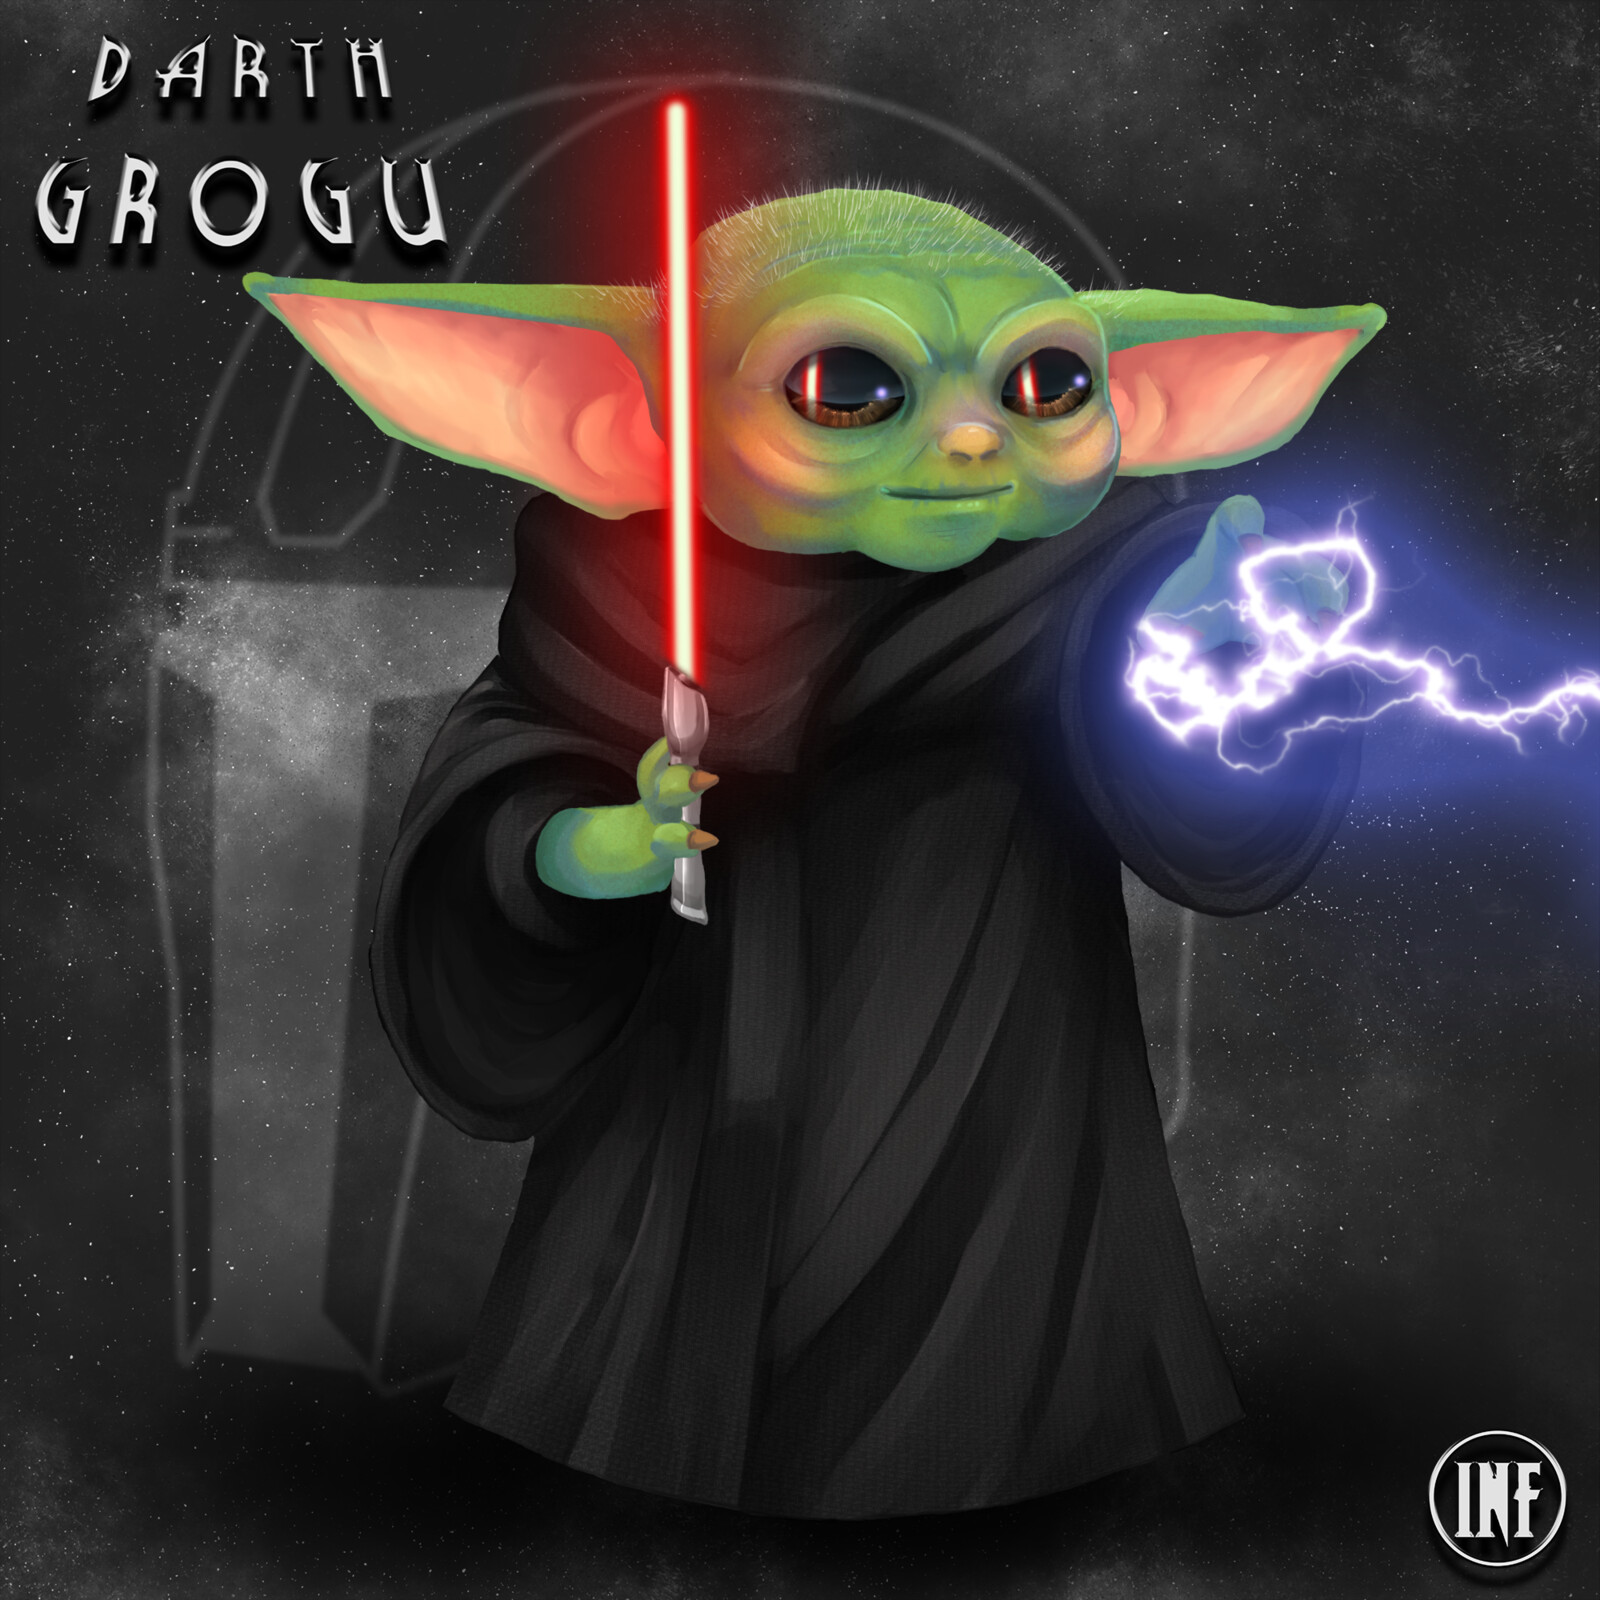 Darth Grogu